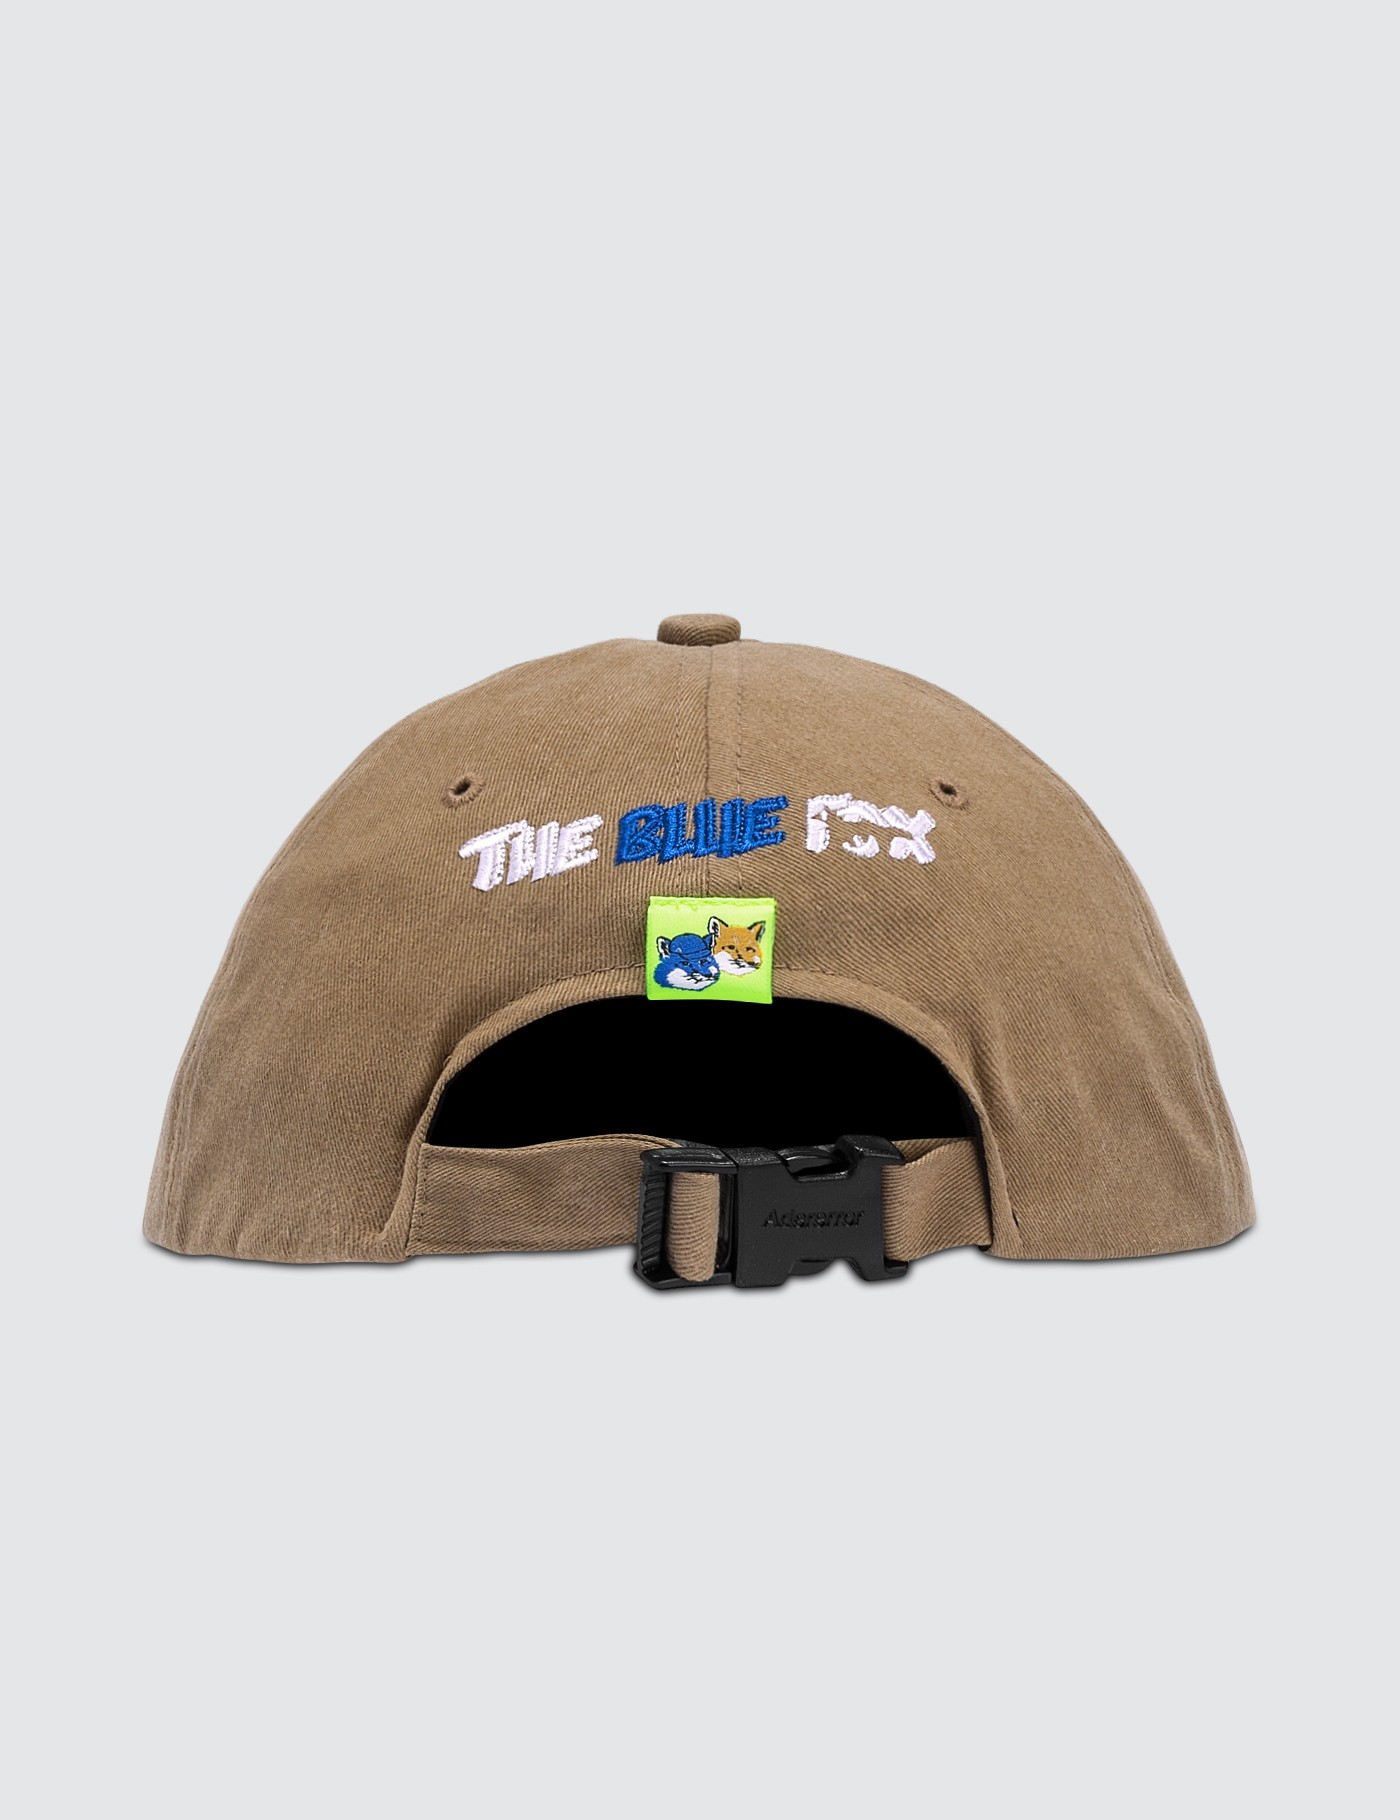 MAISON KITSUNE Ader Error x  Fox Head Cap